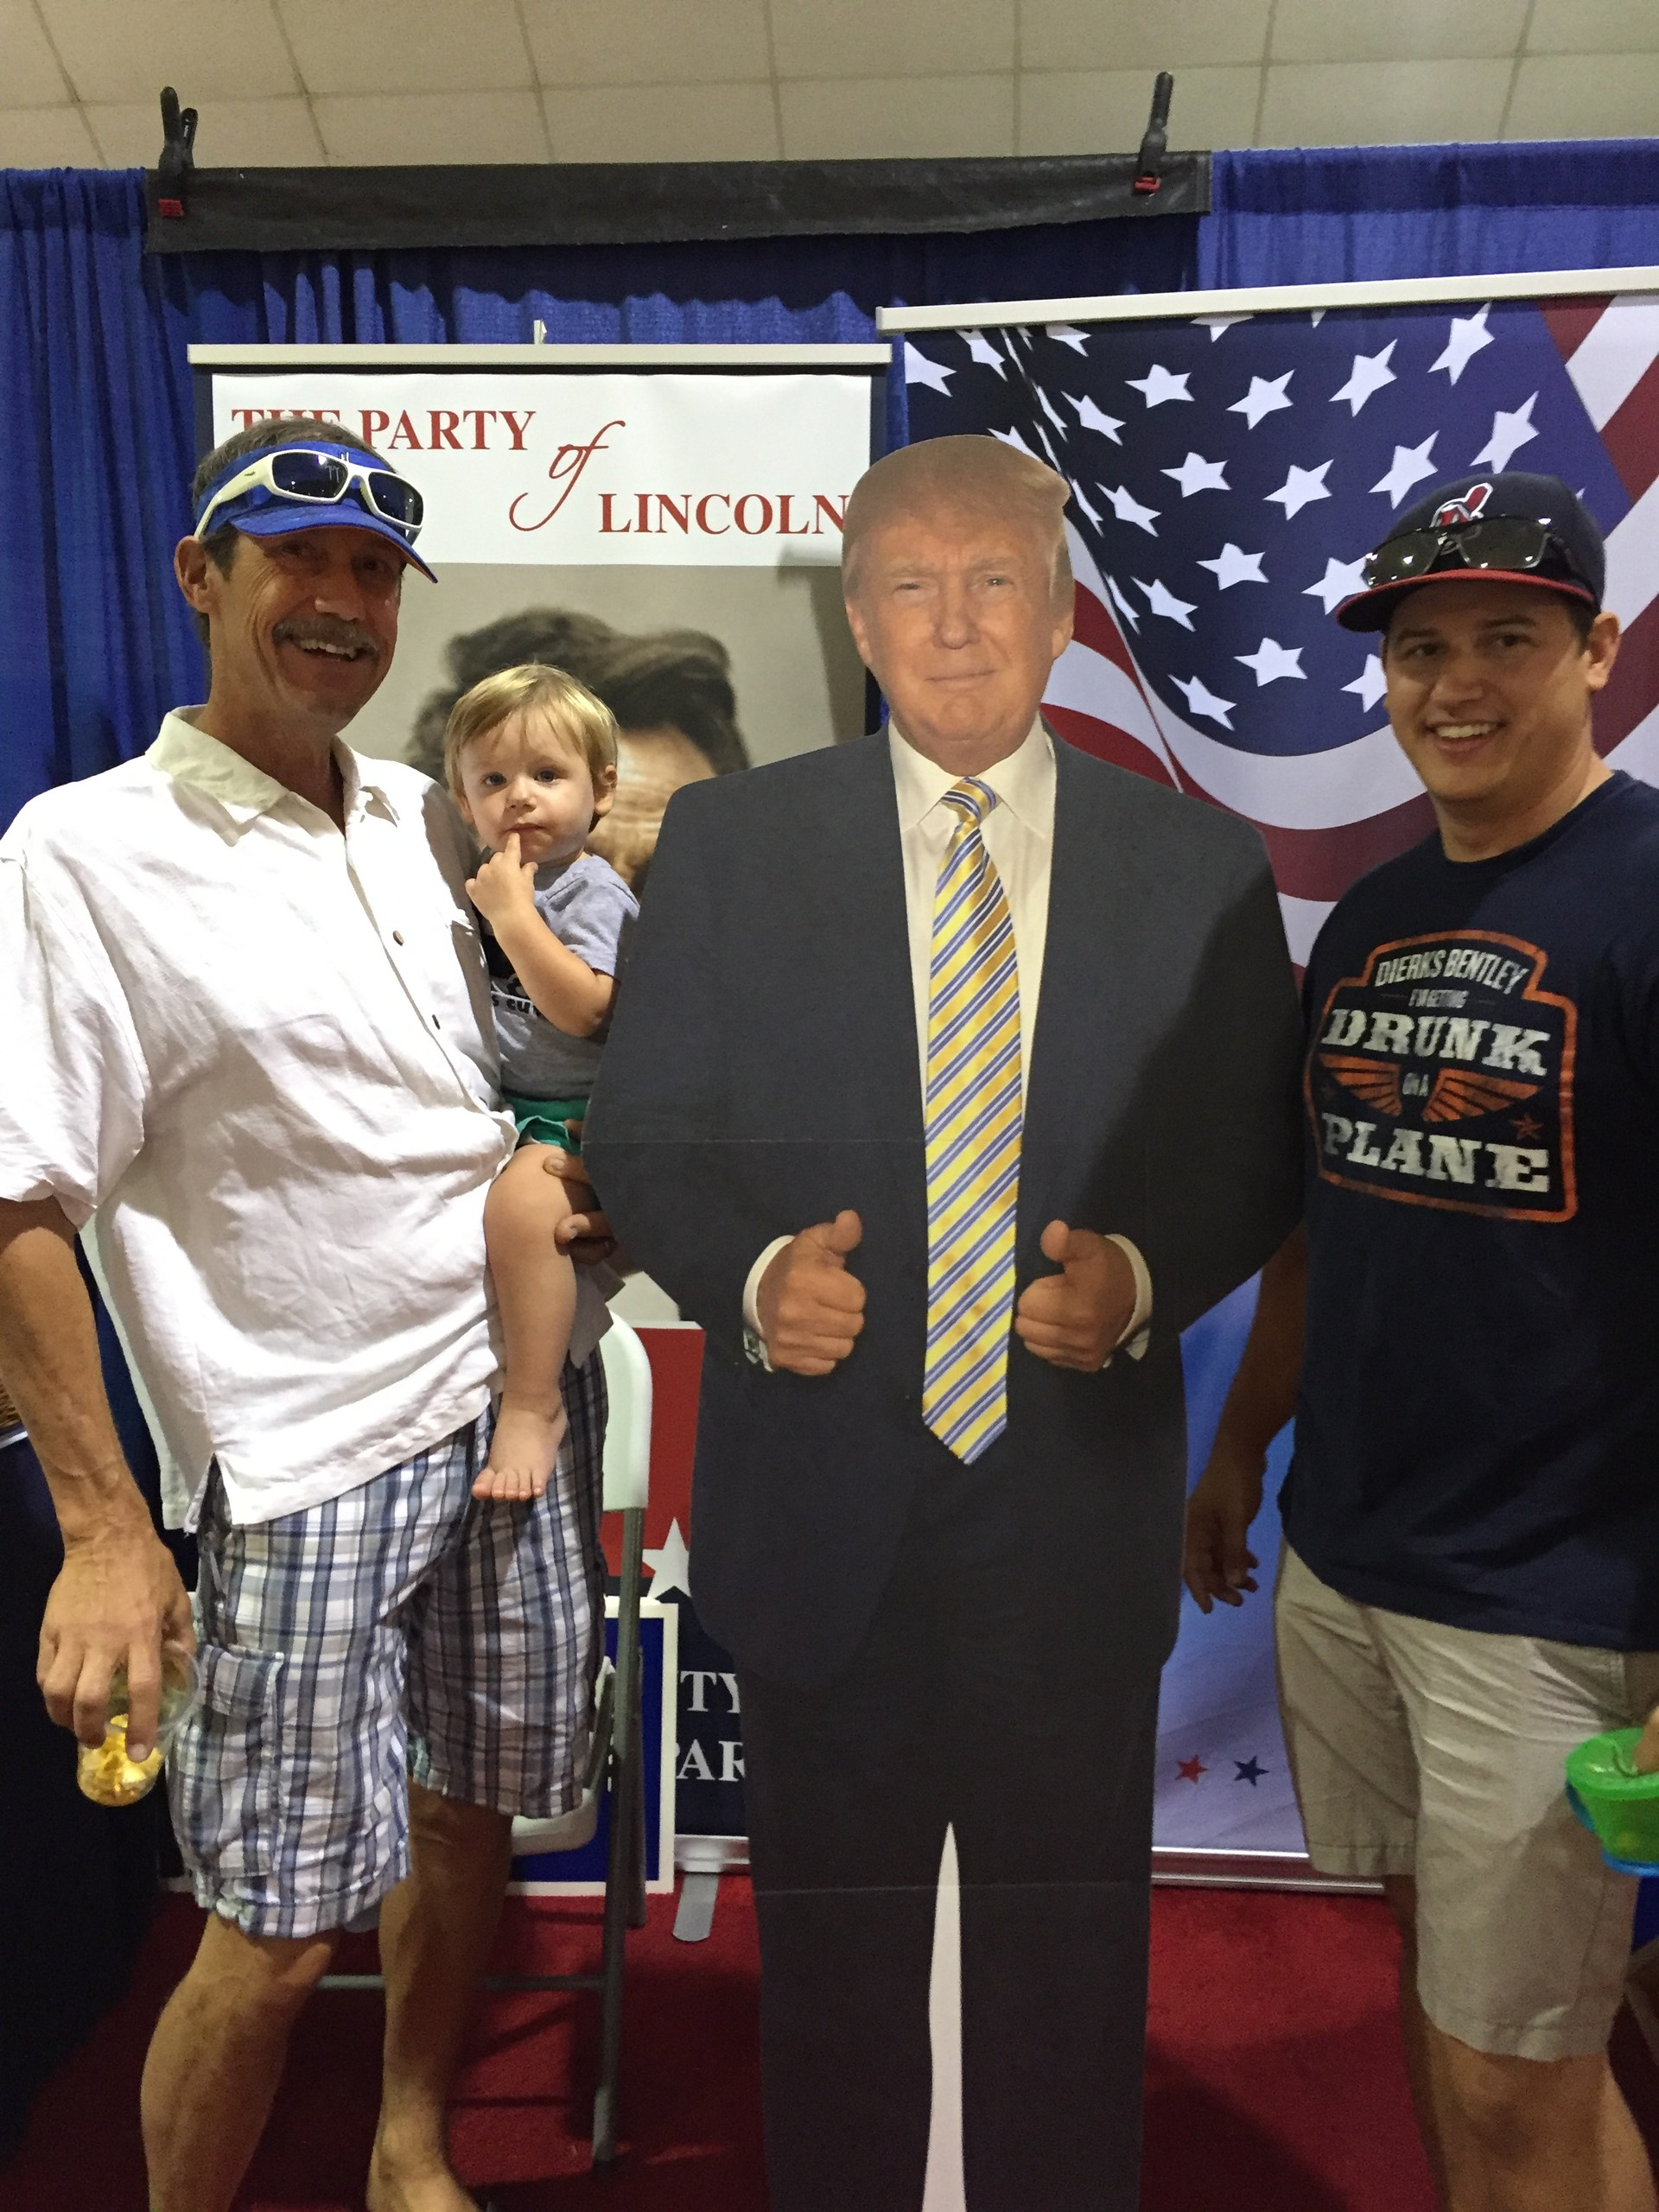 With my grandson and poster of President Trump